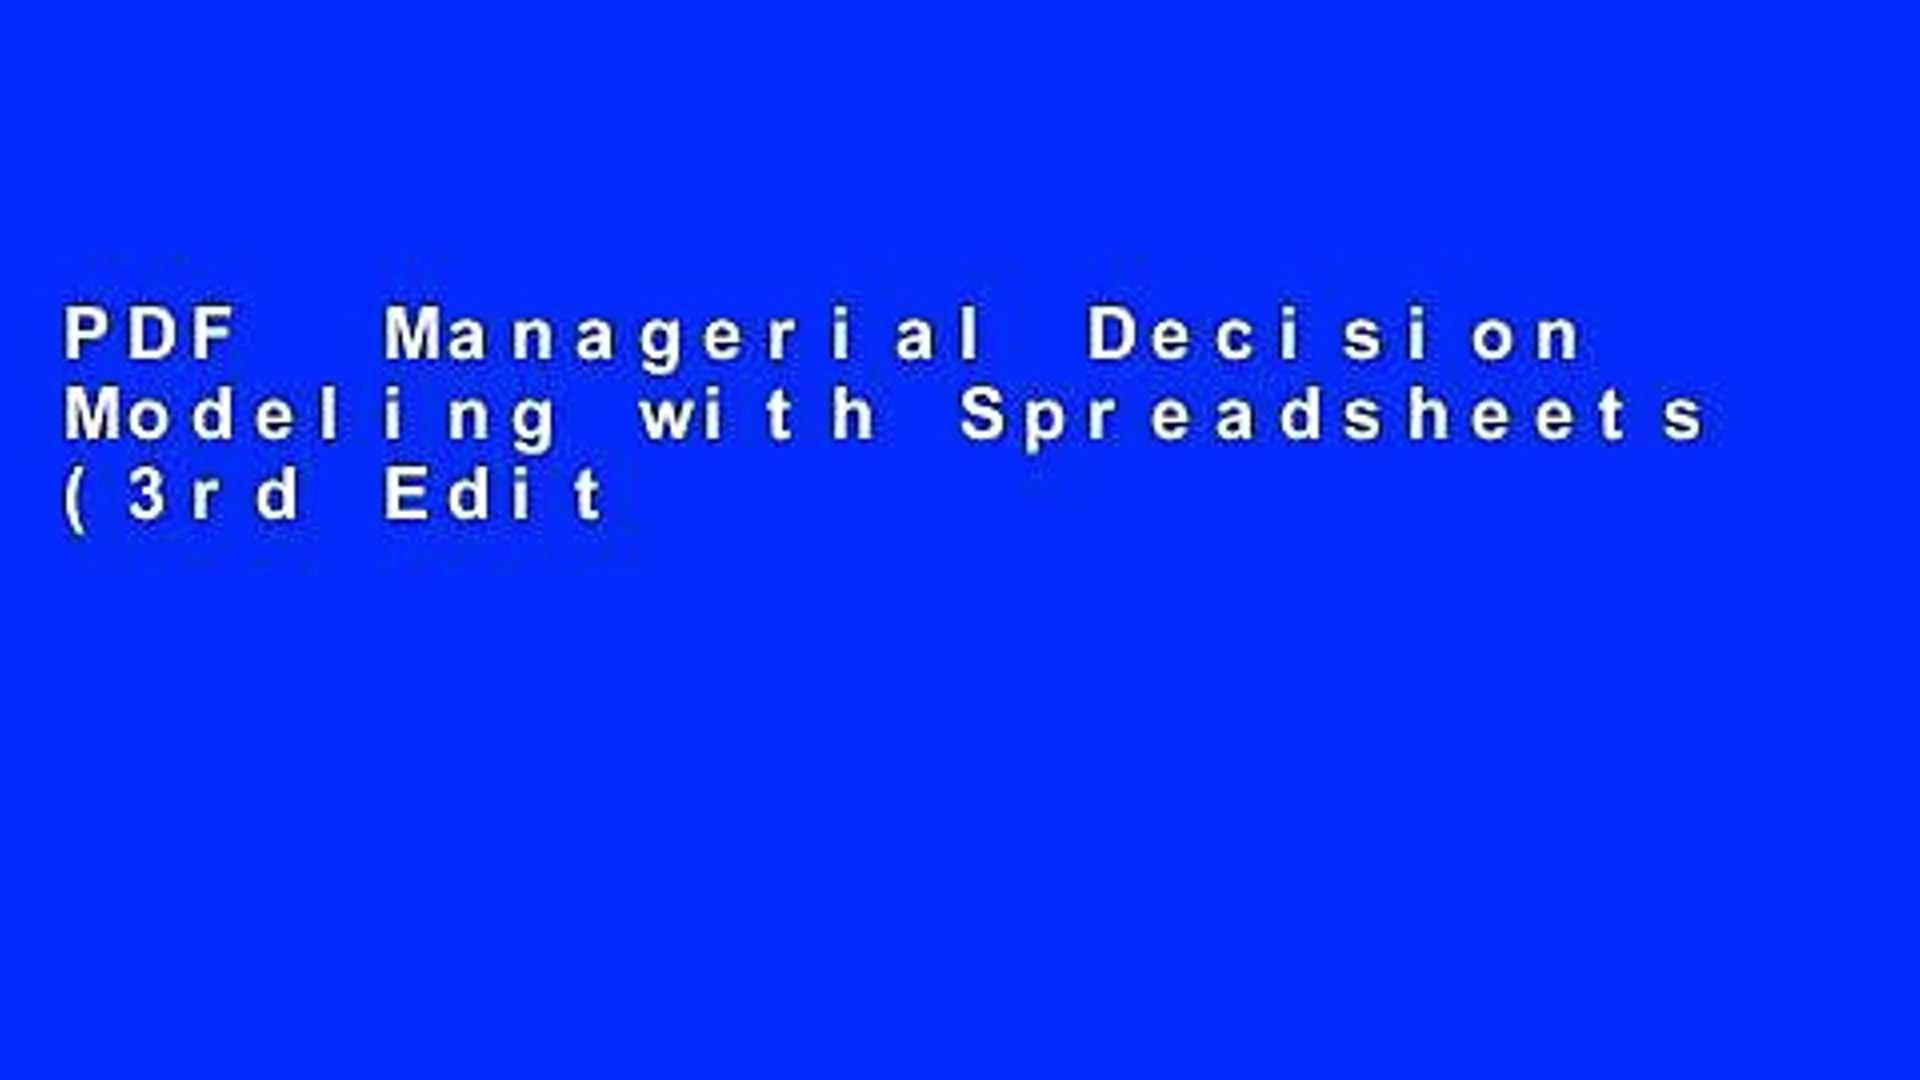 Managerial Decision Modeling With Spreadsheets 3Rd Edition Pdf Download Regarding Pdf Managerial Decision Modeling With Spreadsheets 3Rd Edition